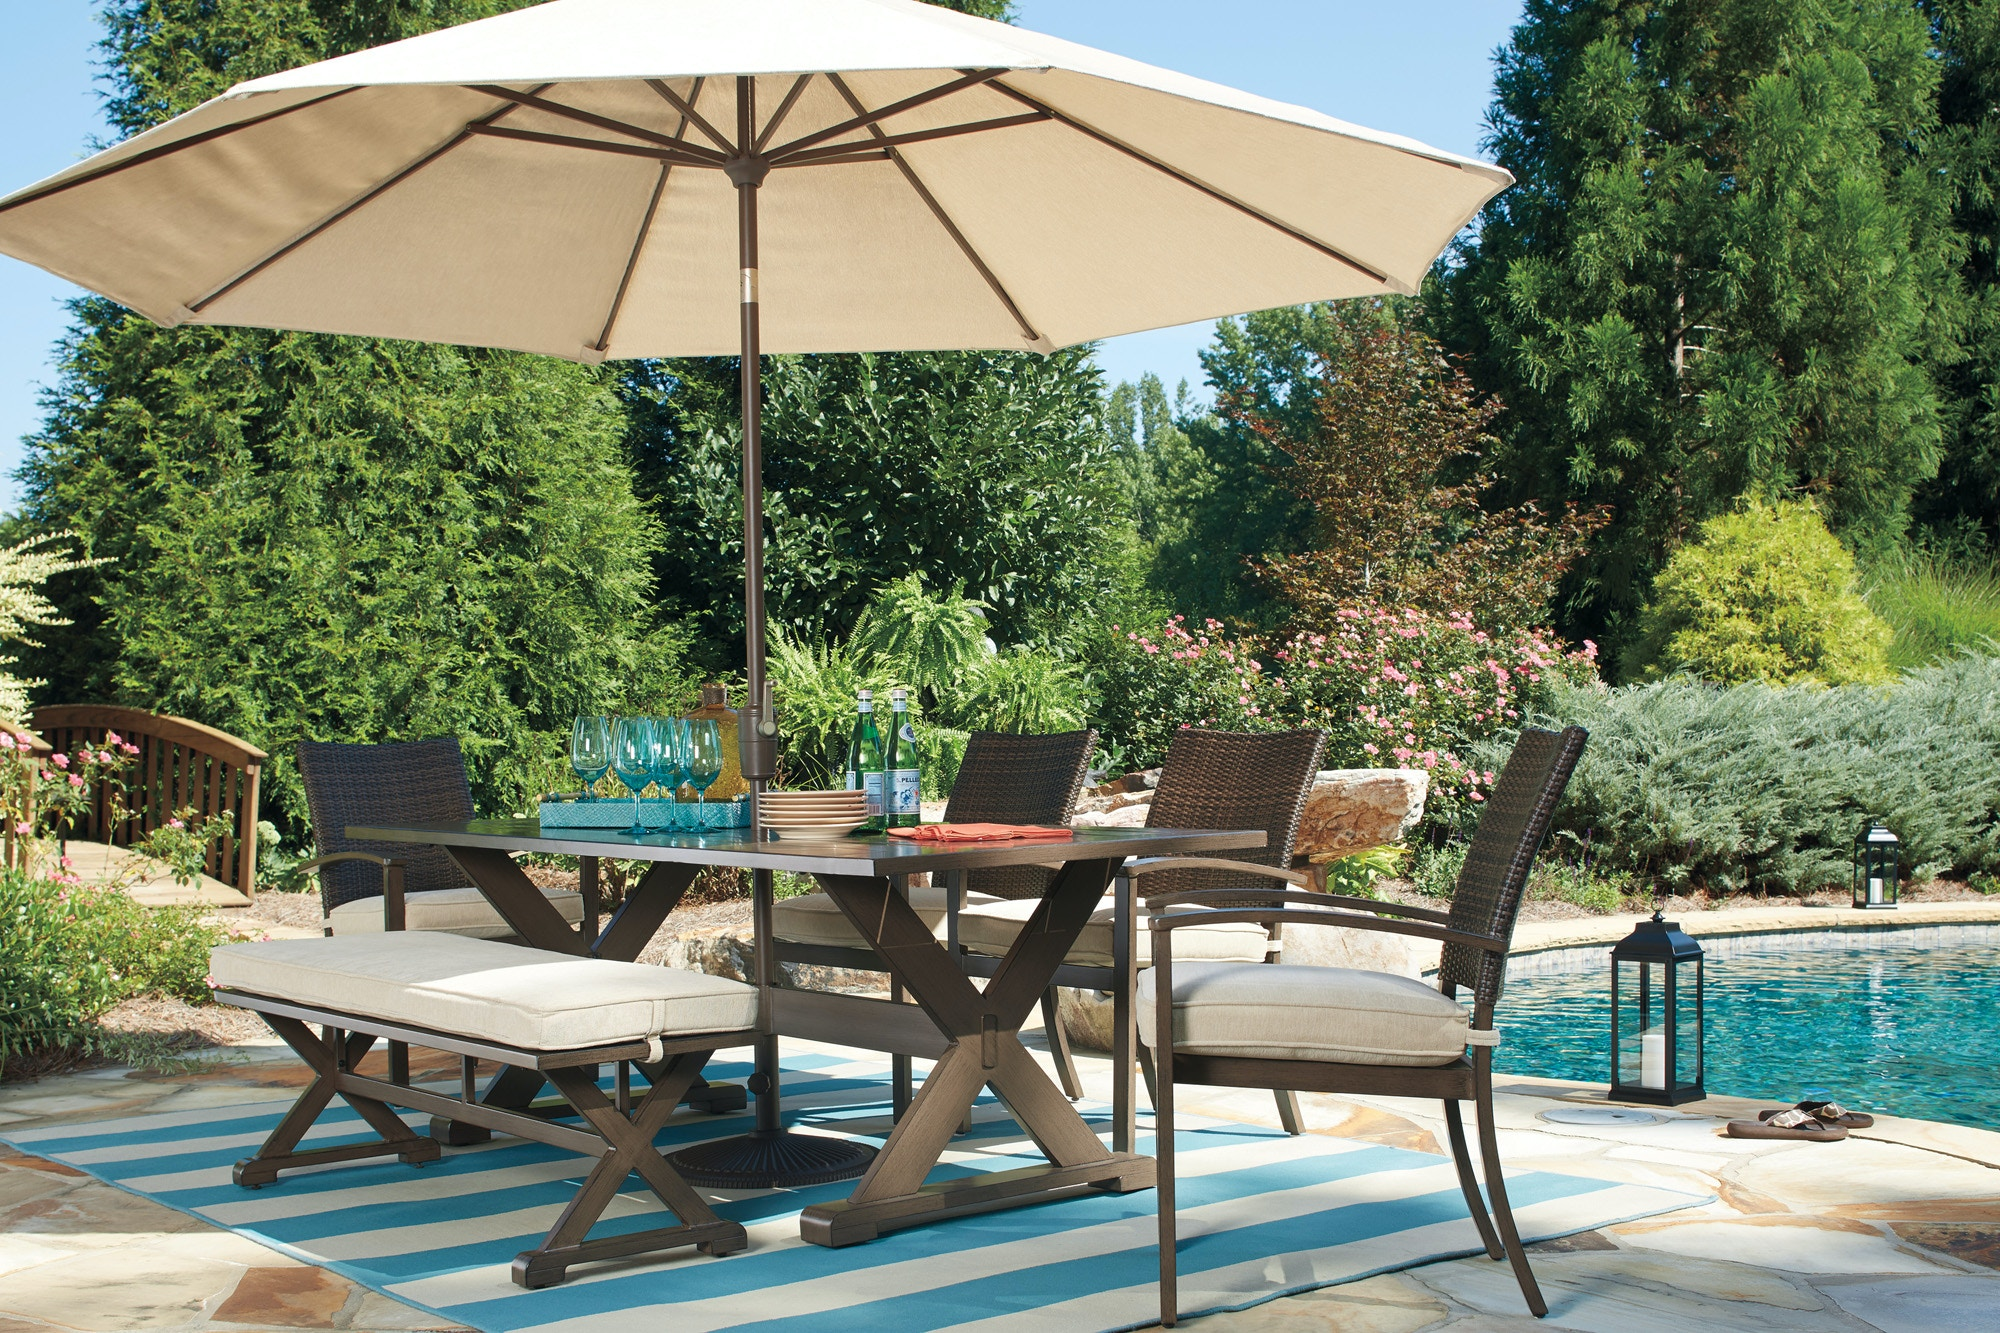 Signature Design by Ashley Outdoor Patio Moresdale Bench Dining